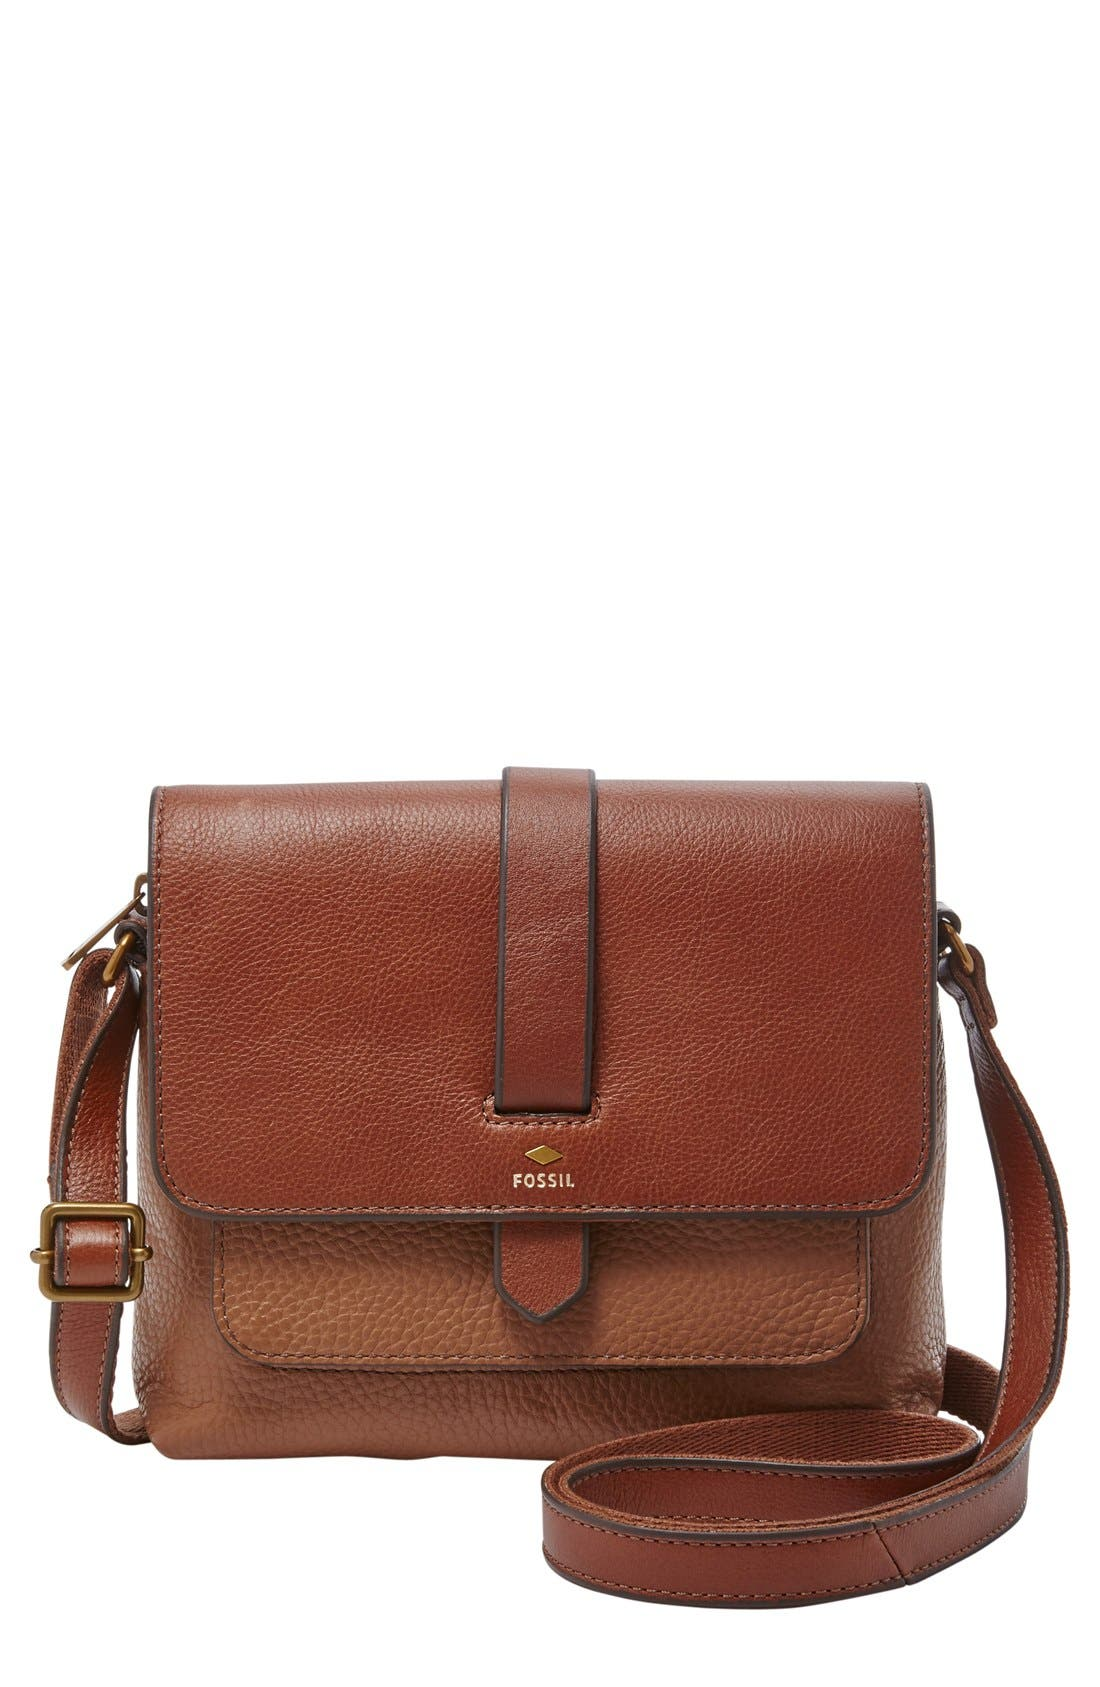 Alternate Image 1 Selected - Fossil 'Small Kinley' Crossbody Bag